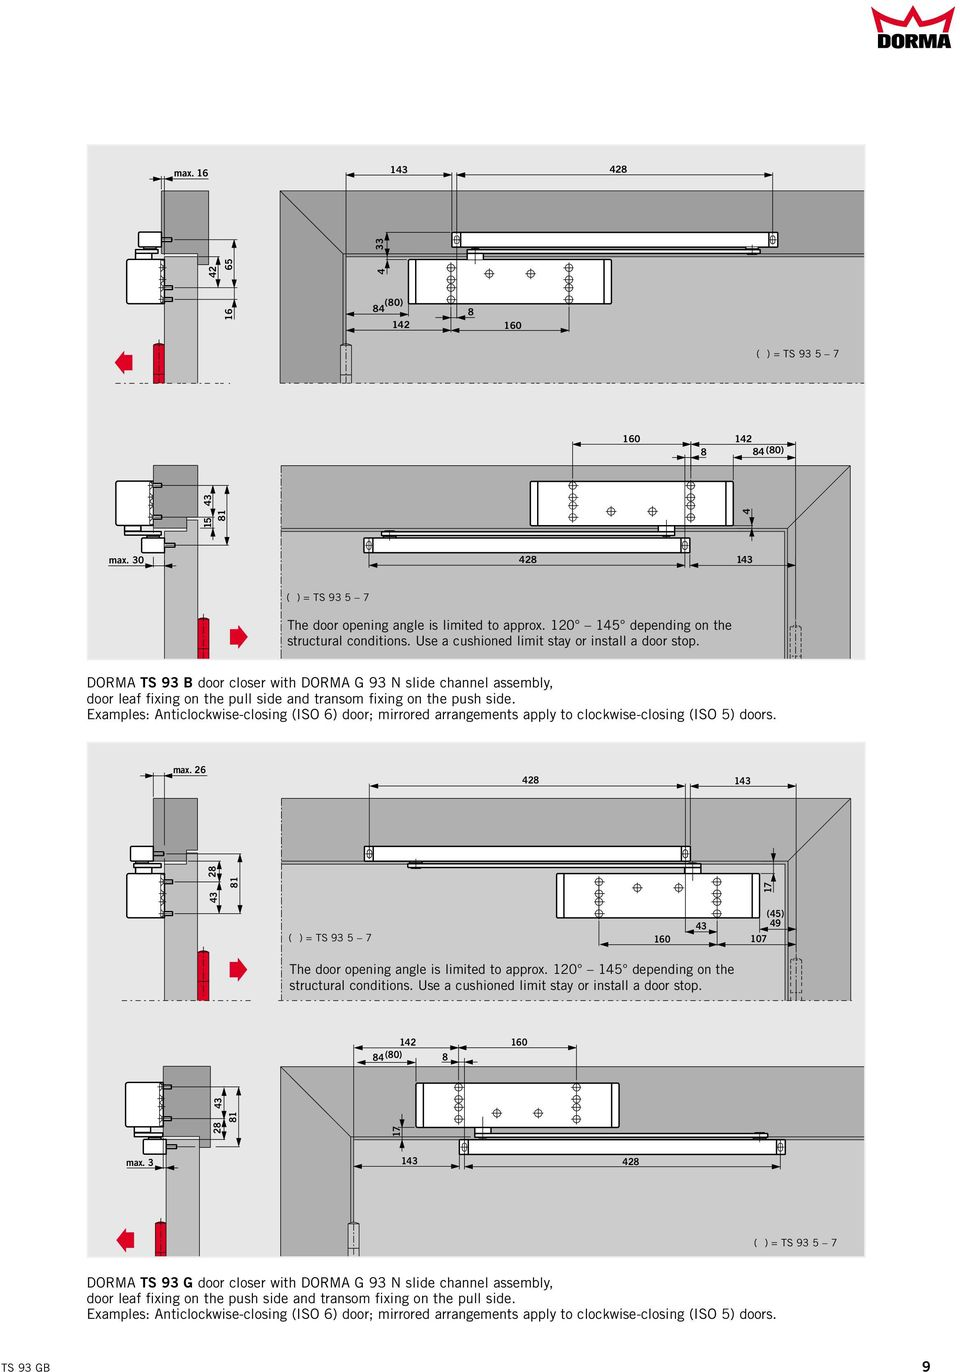 cam action door closer system dorma ts 93 pdf. Black Bedroom Furniture Sets. Home Design Ideas